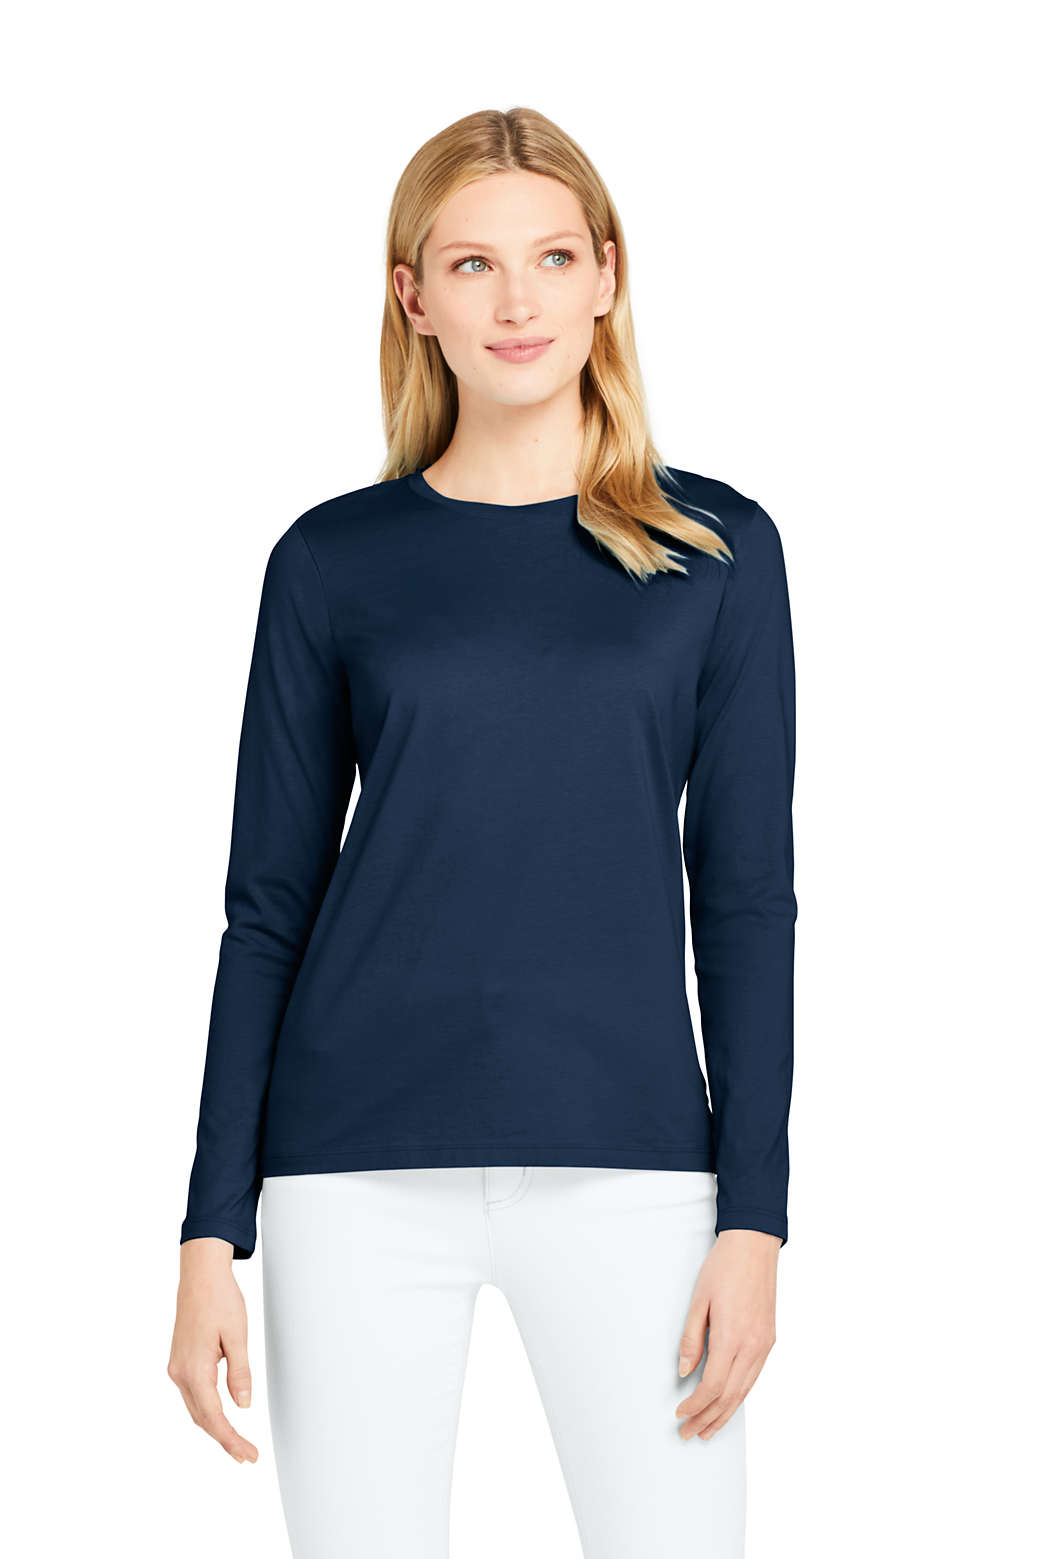 1af09e276e7 Women s Supima Cotton Long Sleeve T-shirt - Relaxed Crewneck from Lands  End